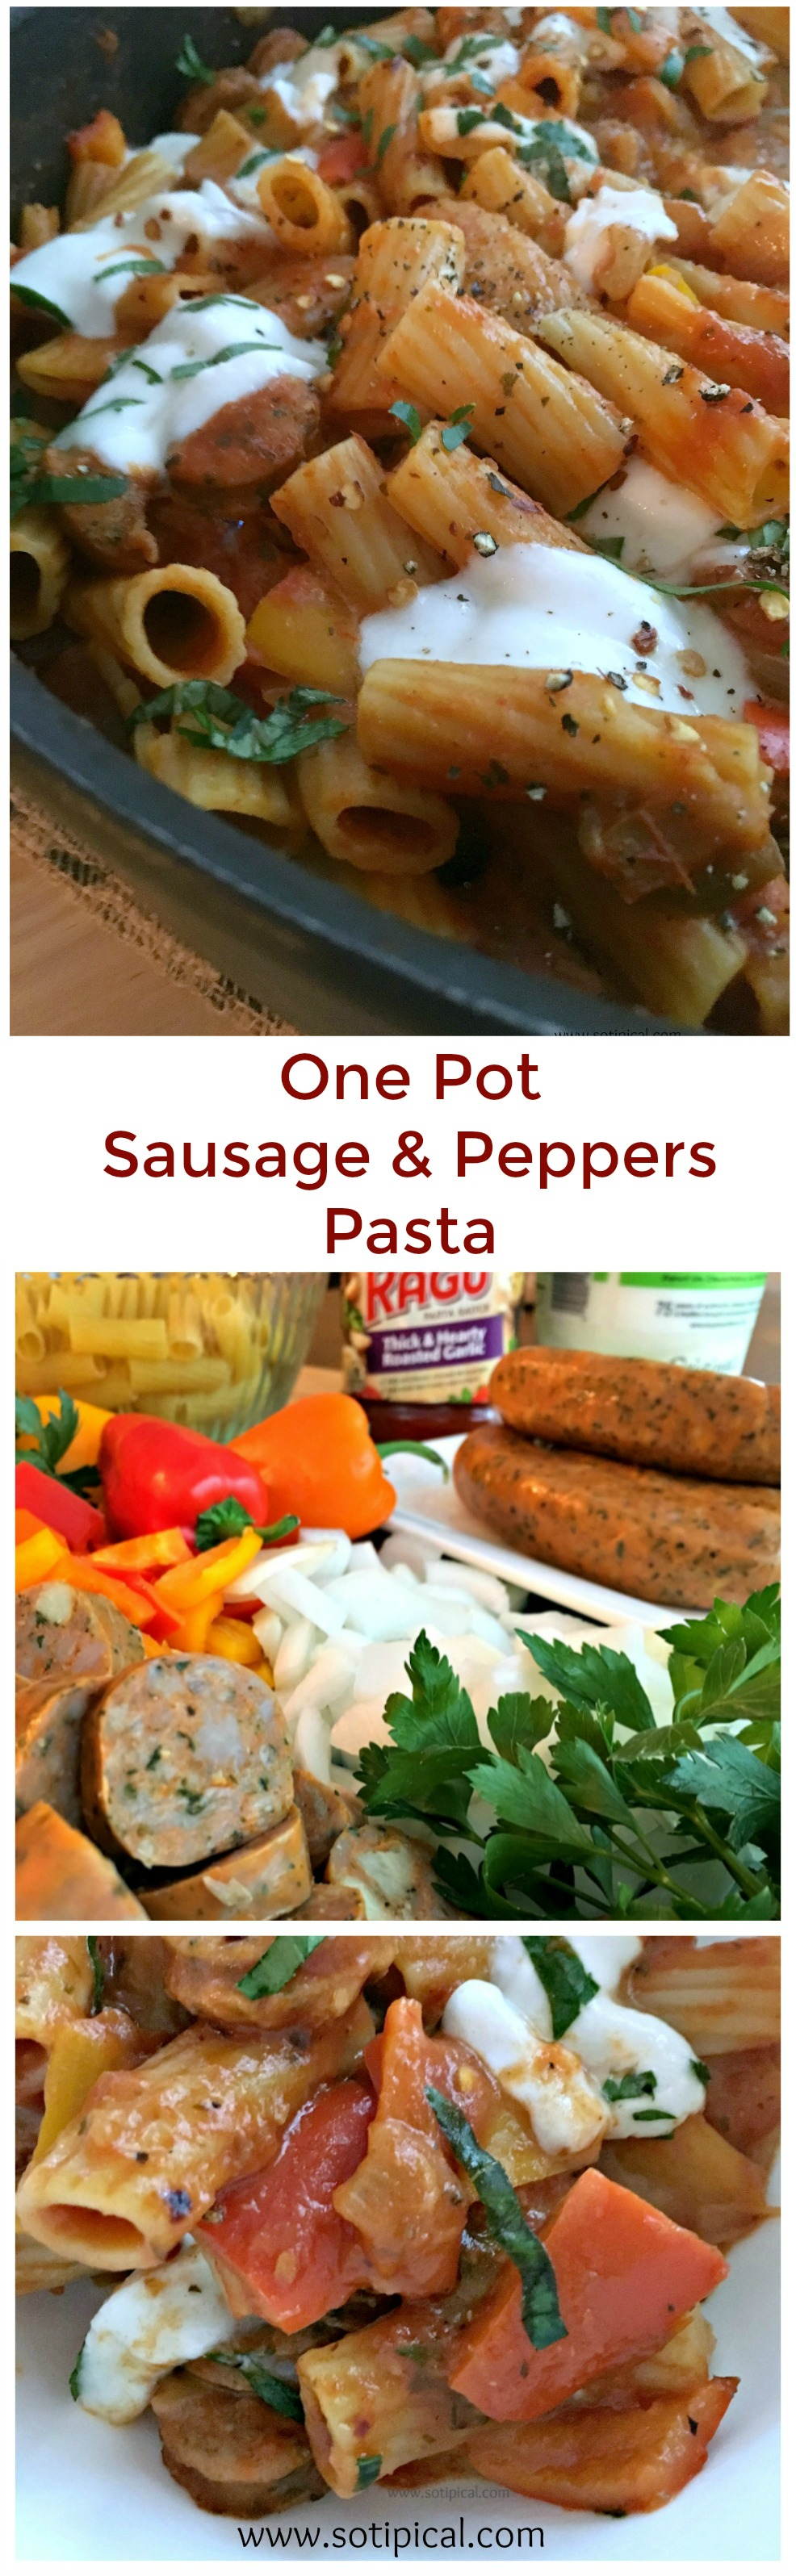 One Pot Sausage and Peppers Pasta - So TIPical Me #SimmeredInTradition